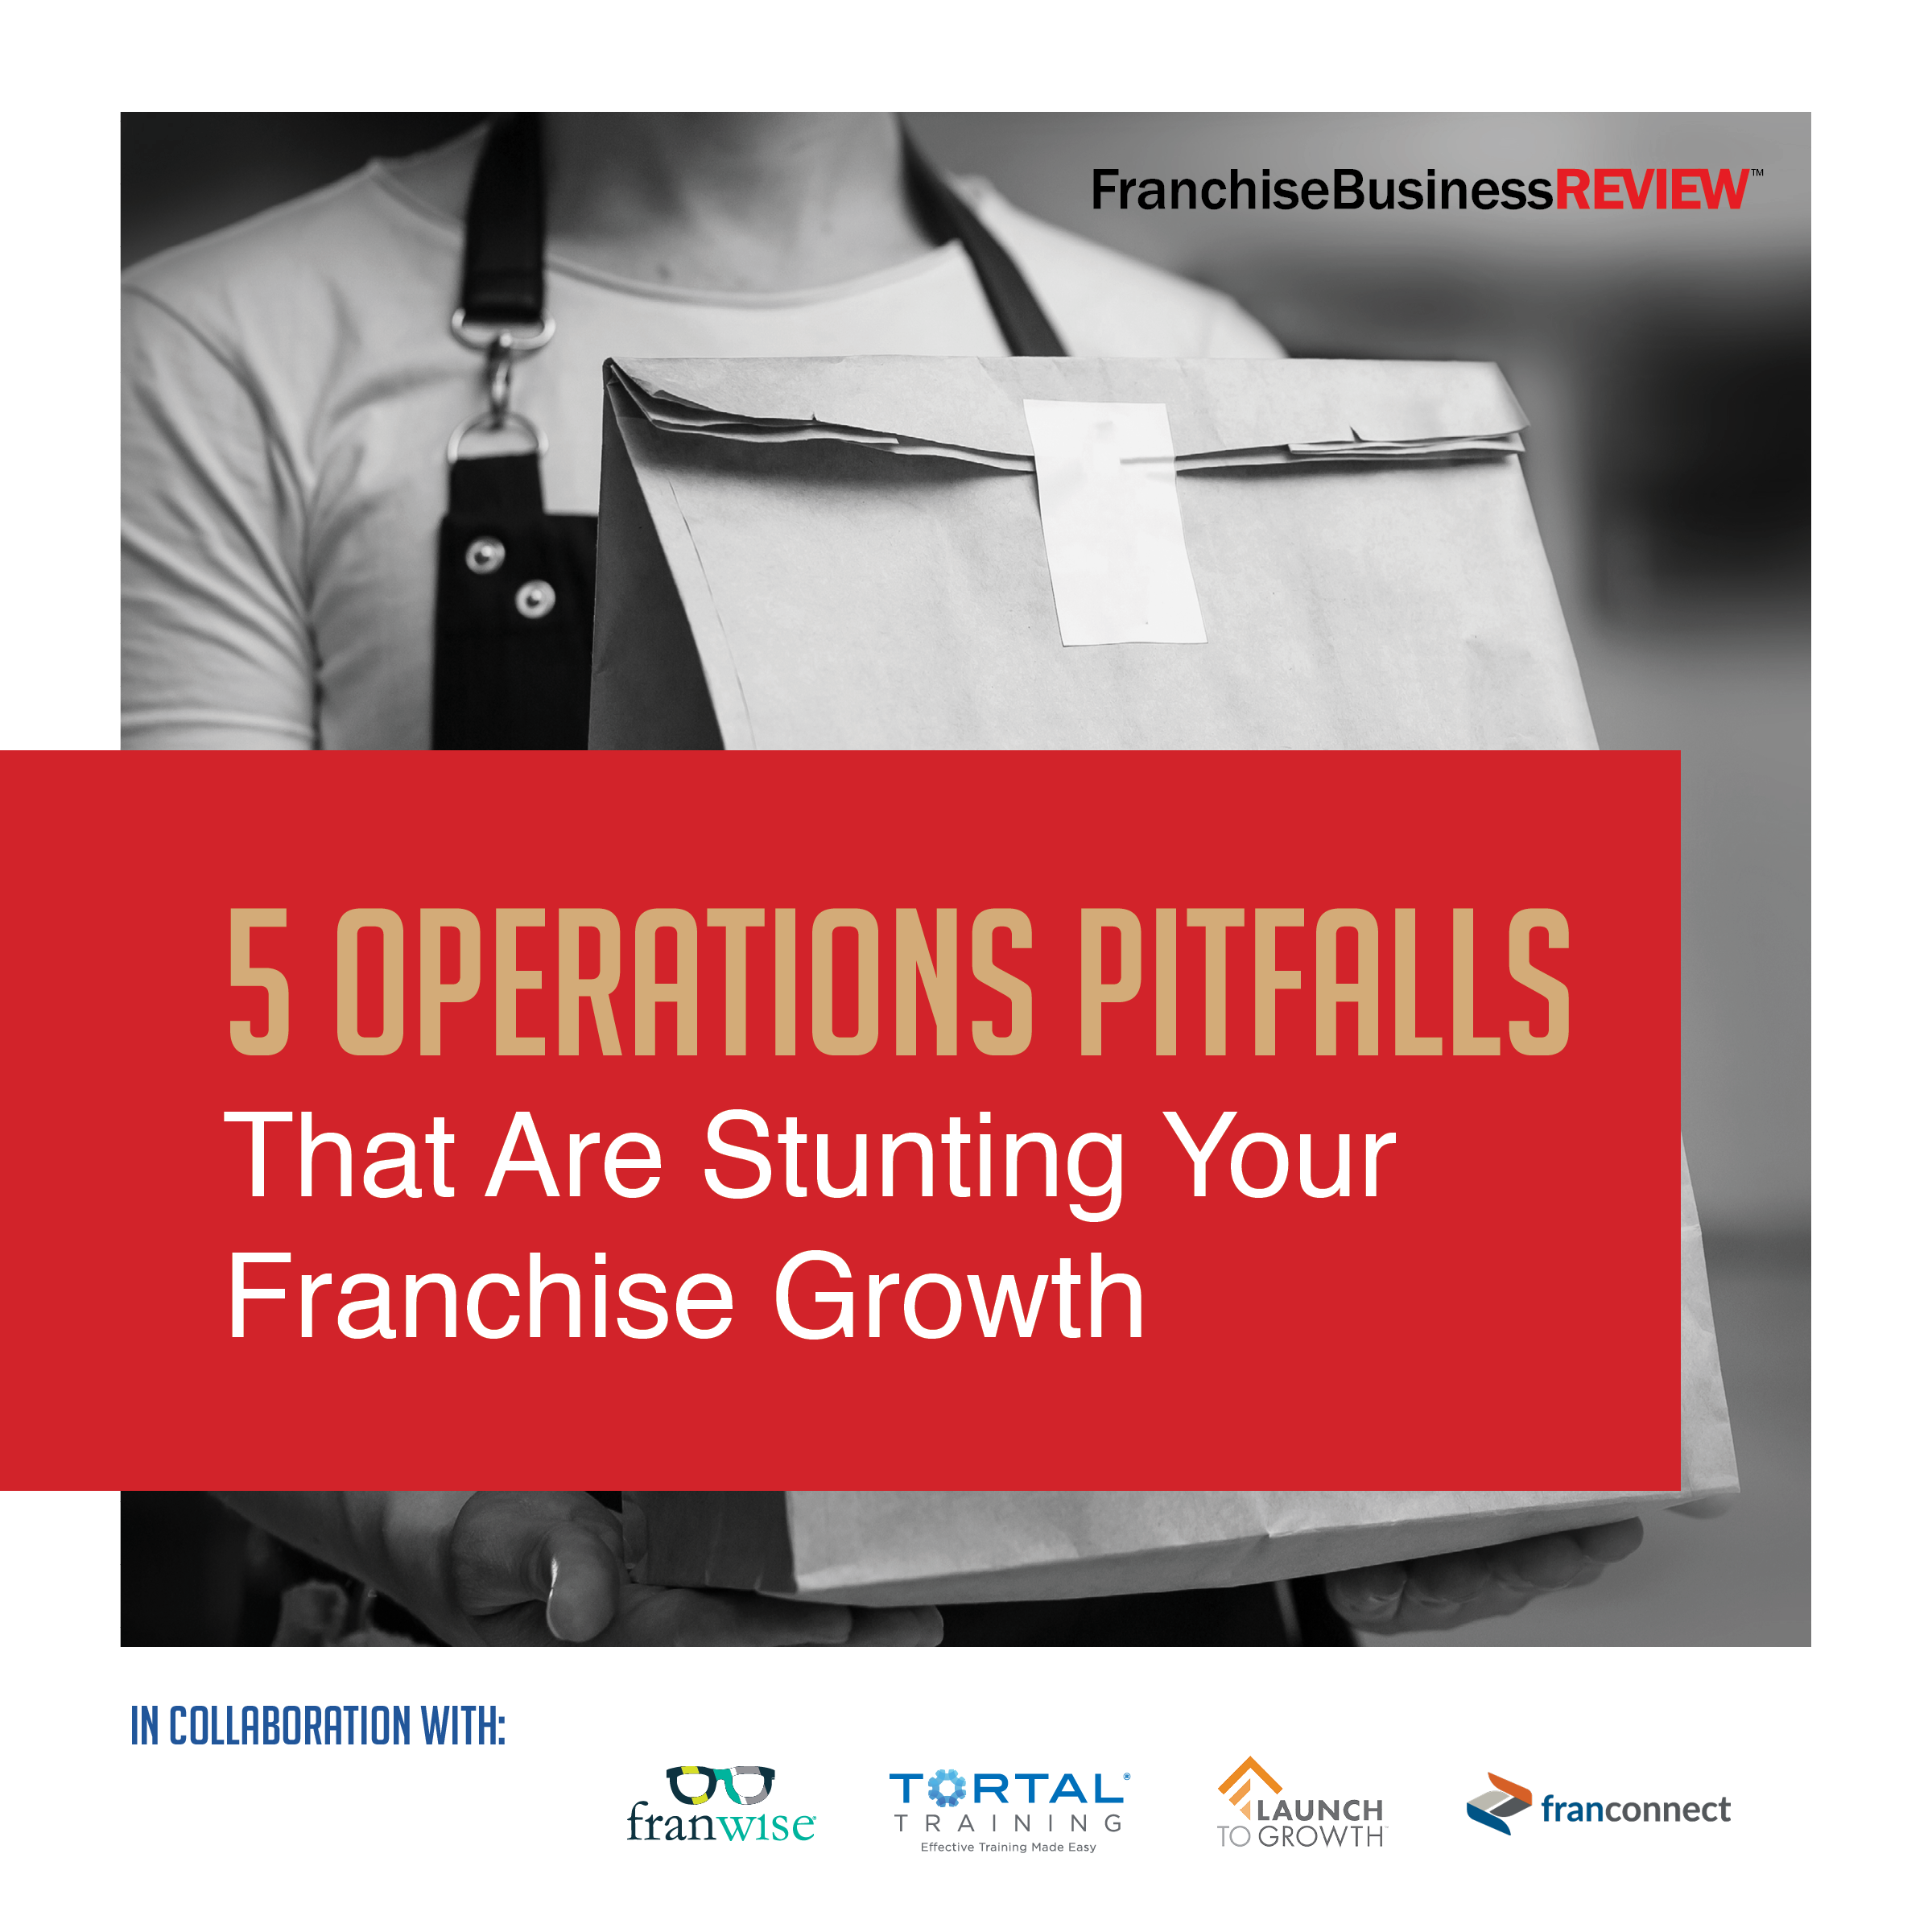 5 Operations Pitfalls Cover